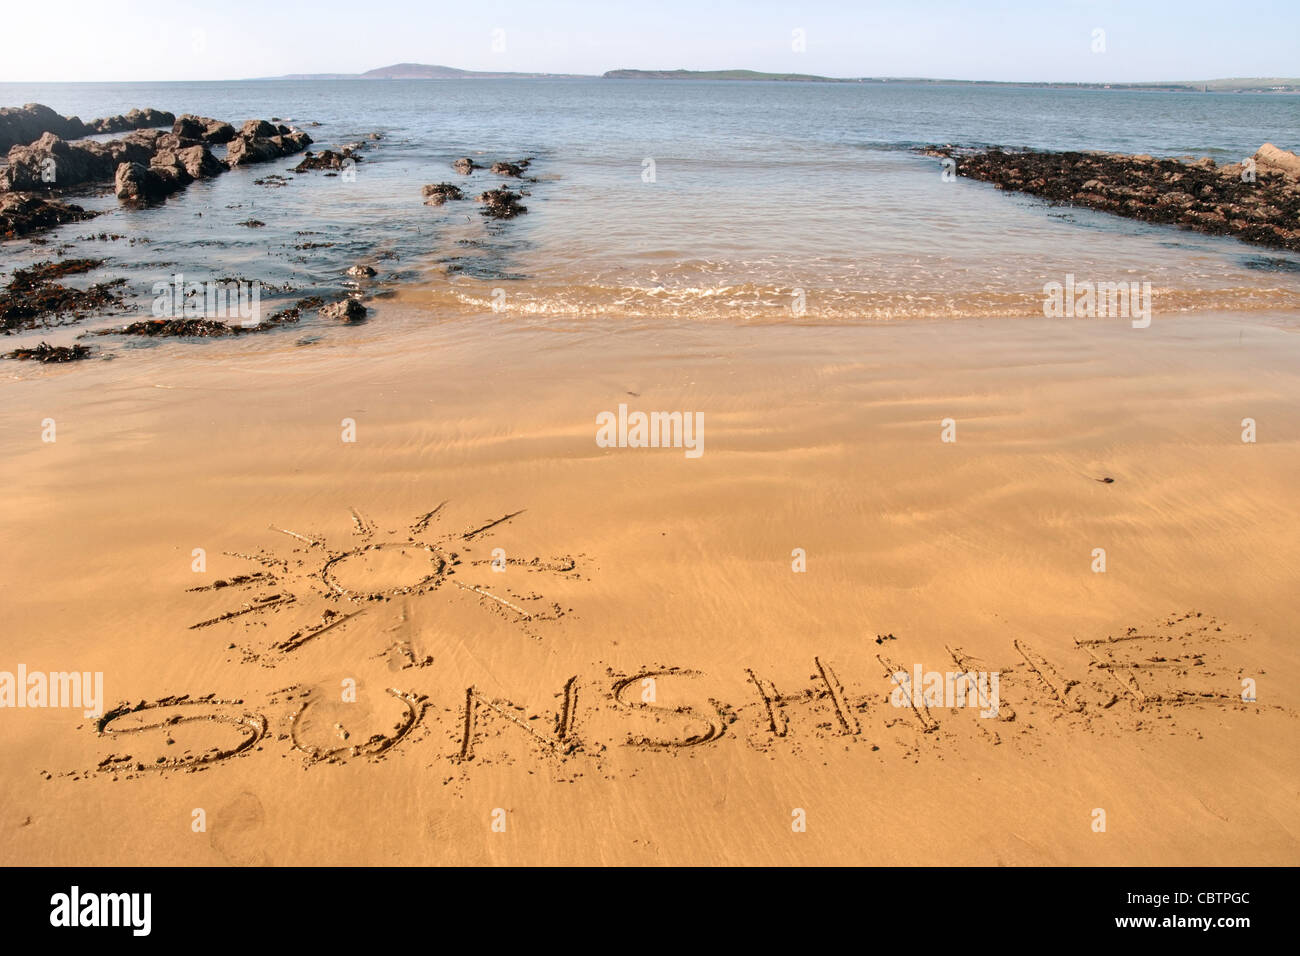 a sunshine icon inscribed on the beach with waves in the background on a hot sunny day - Stock Image